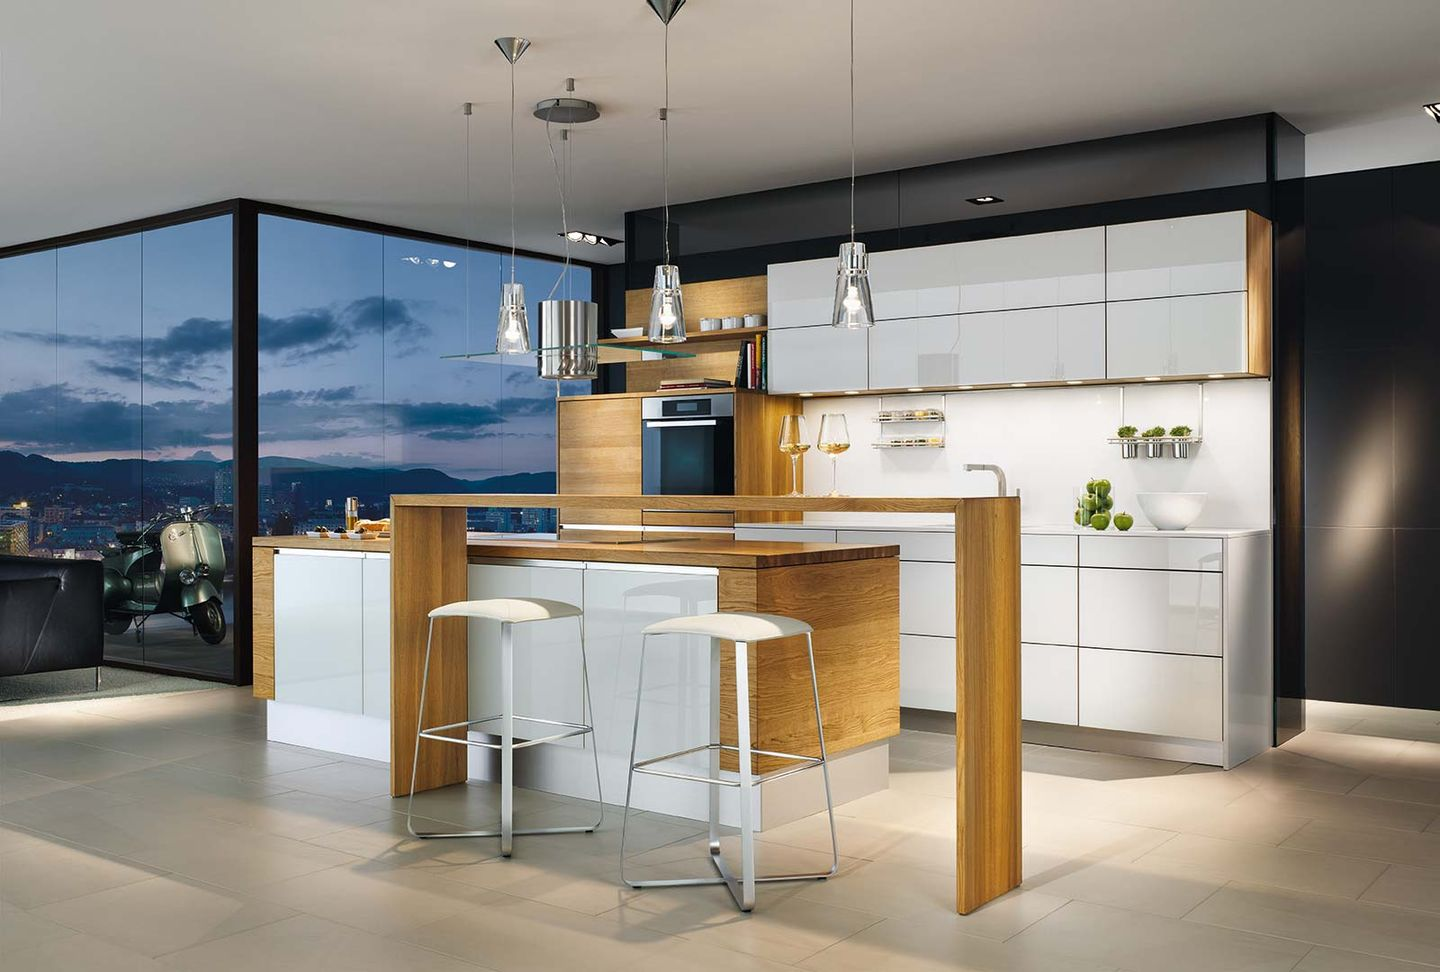 linee designer kitchen with bar element with lux bar stool